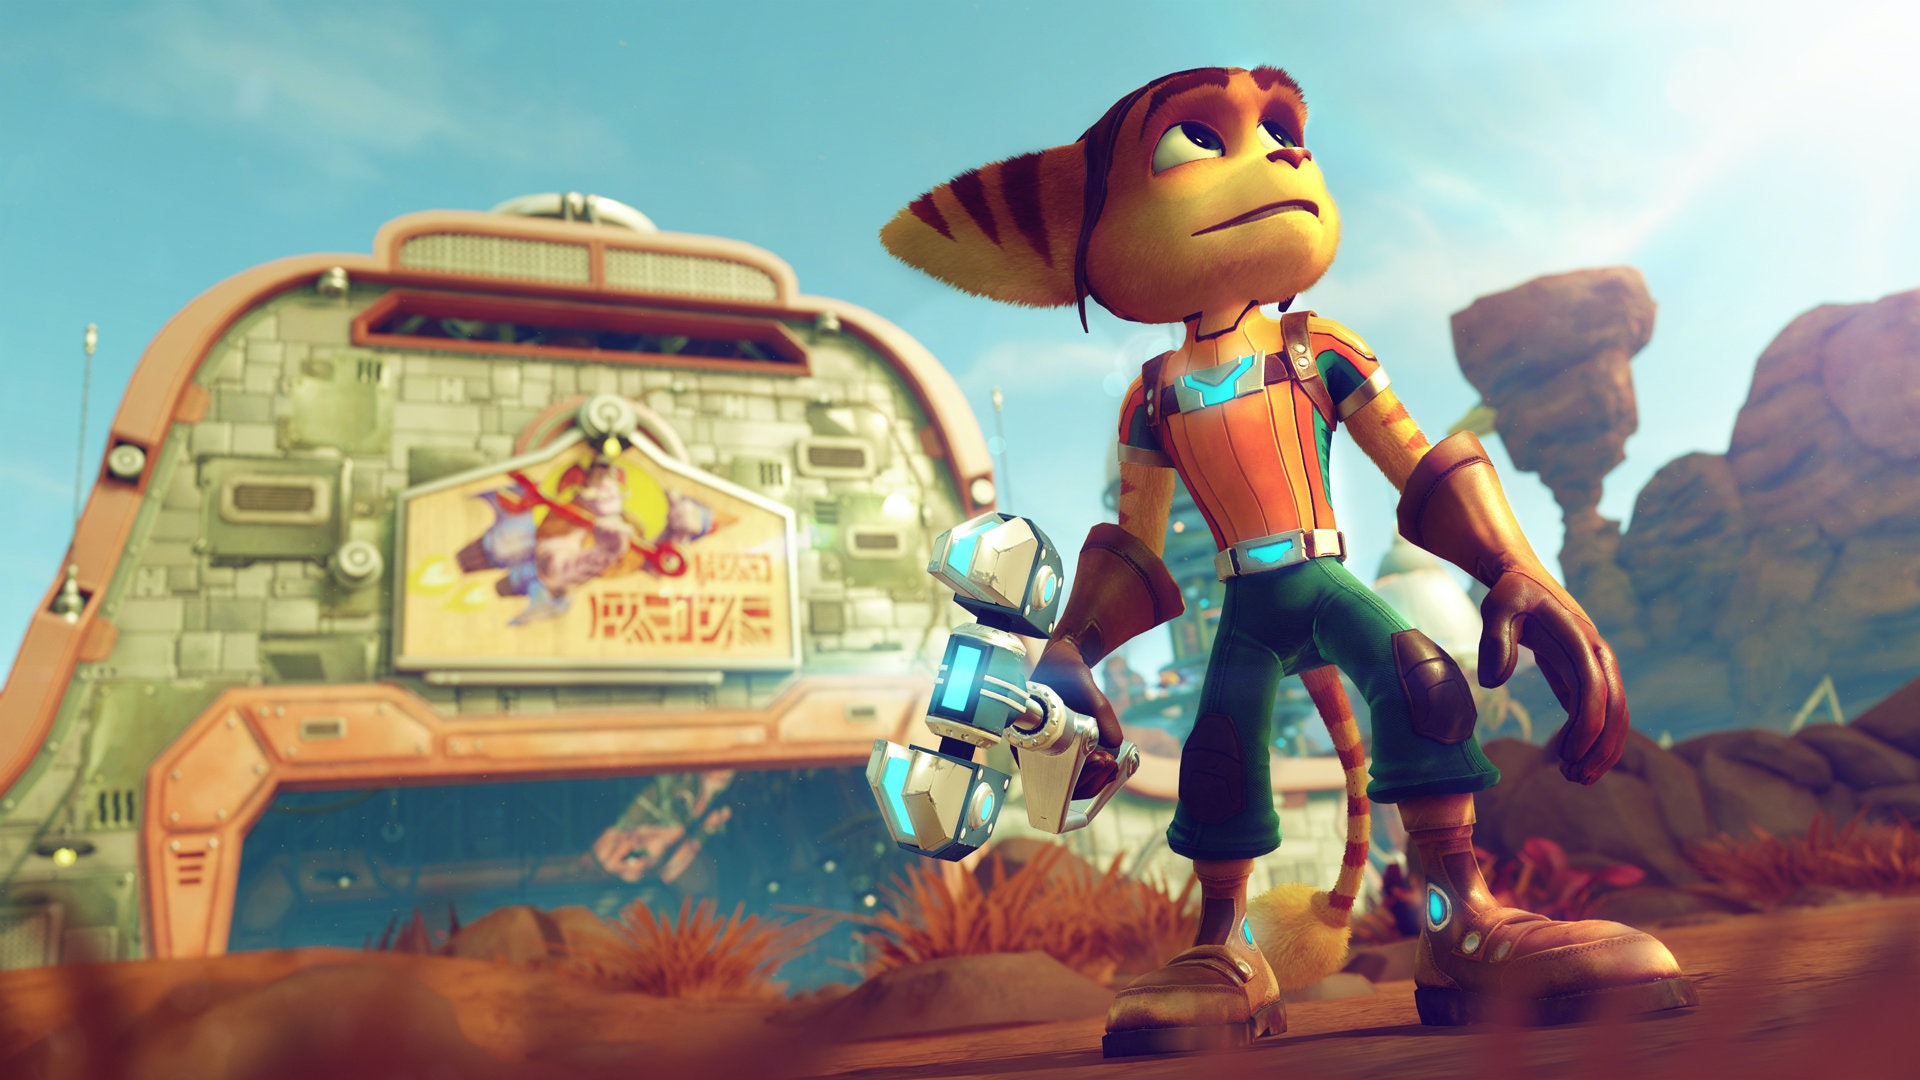 Ratchet And Clank 2 Ps5 Release Date Story Developer And More